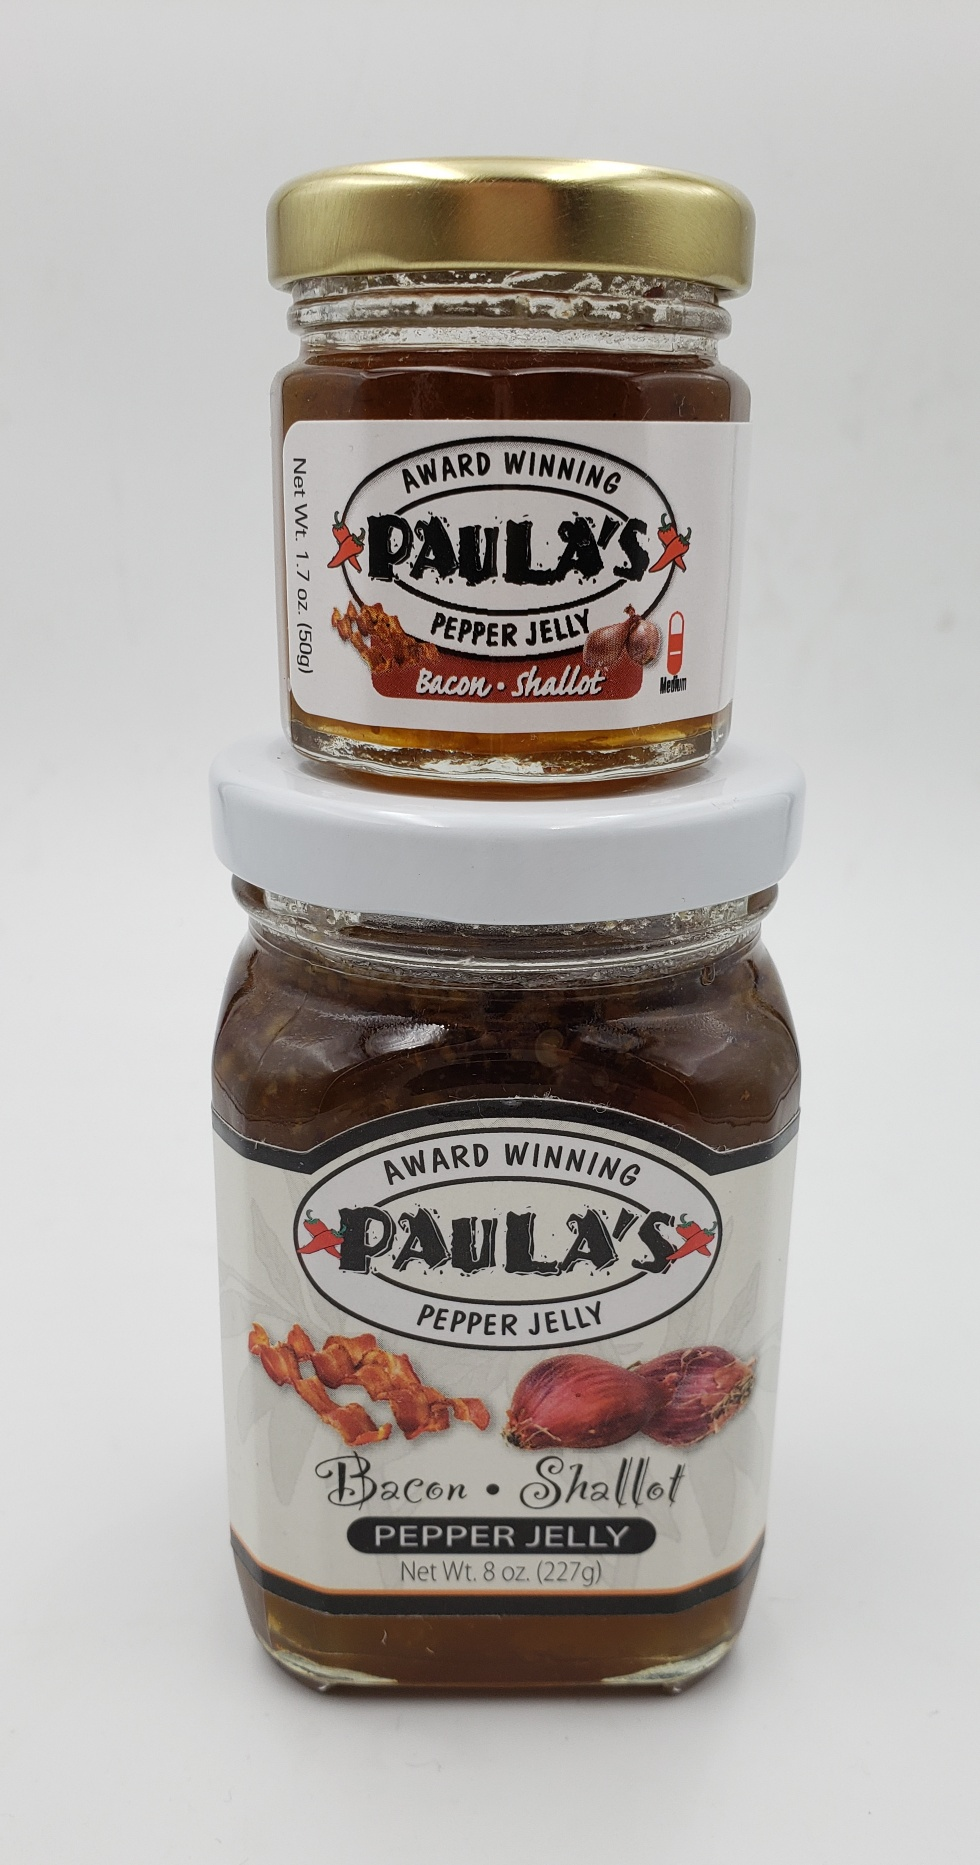 1.7 oz. organic jelly jar from Paula's Pepper Jelly on top of an 8 oz. pepper jelly jar label-side out.